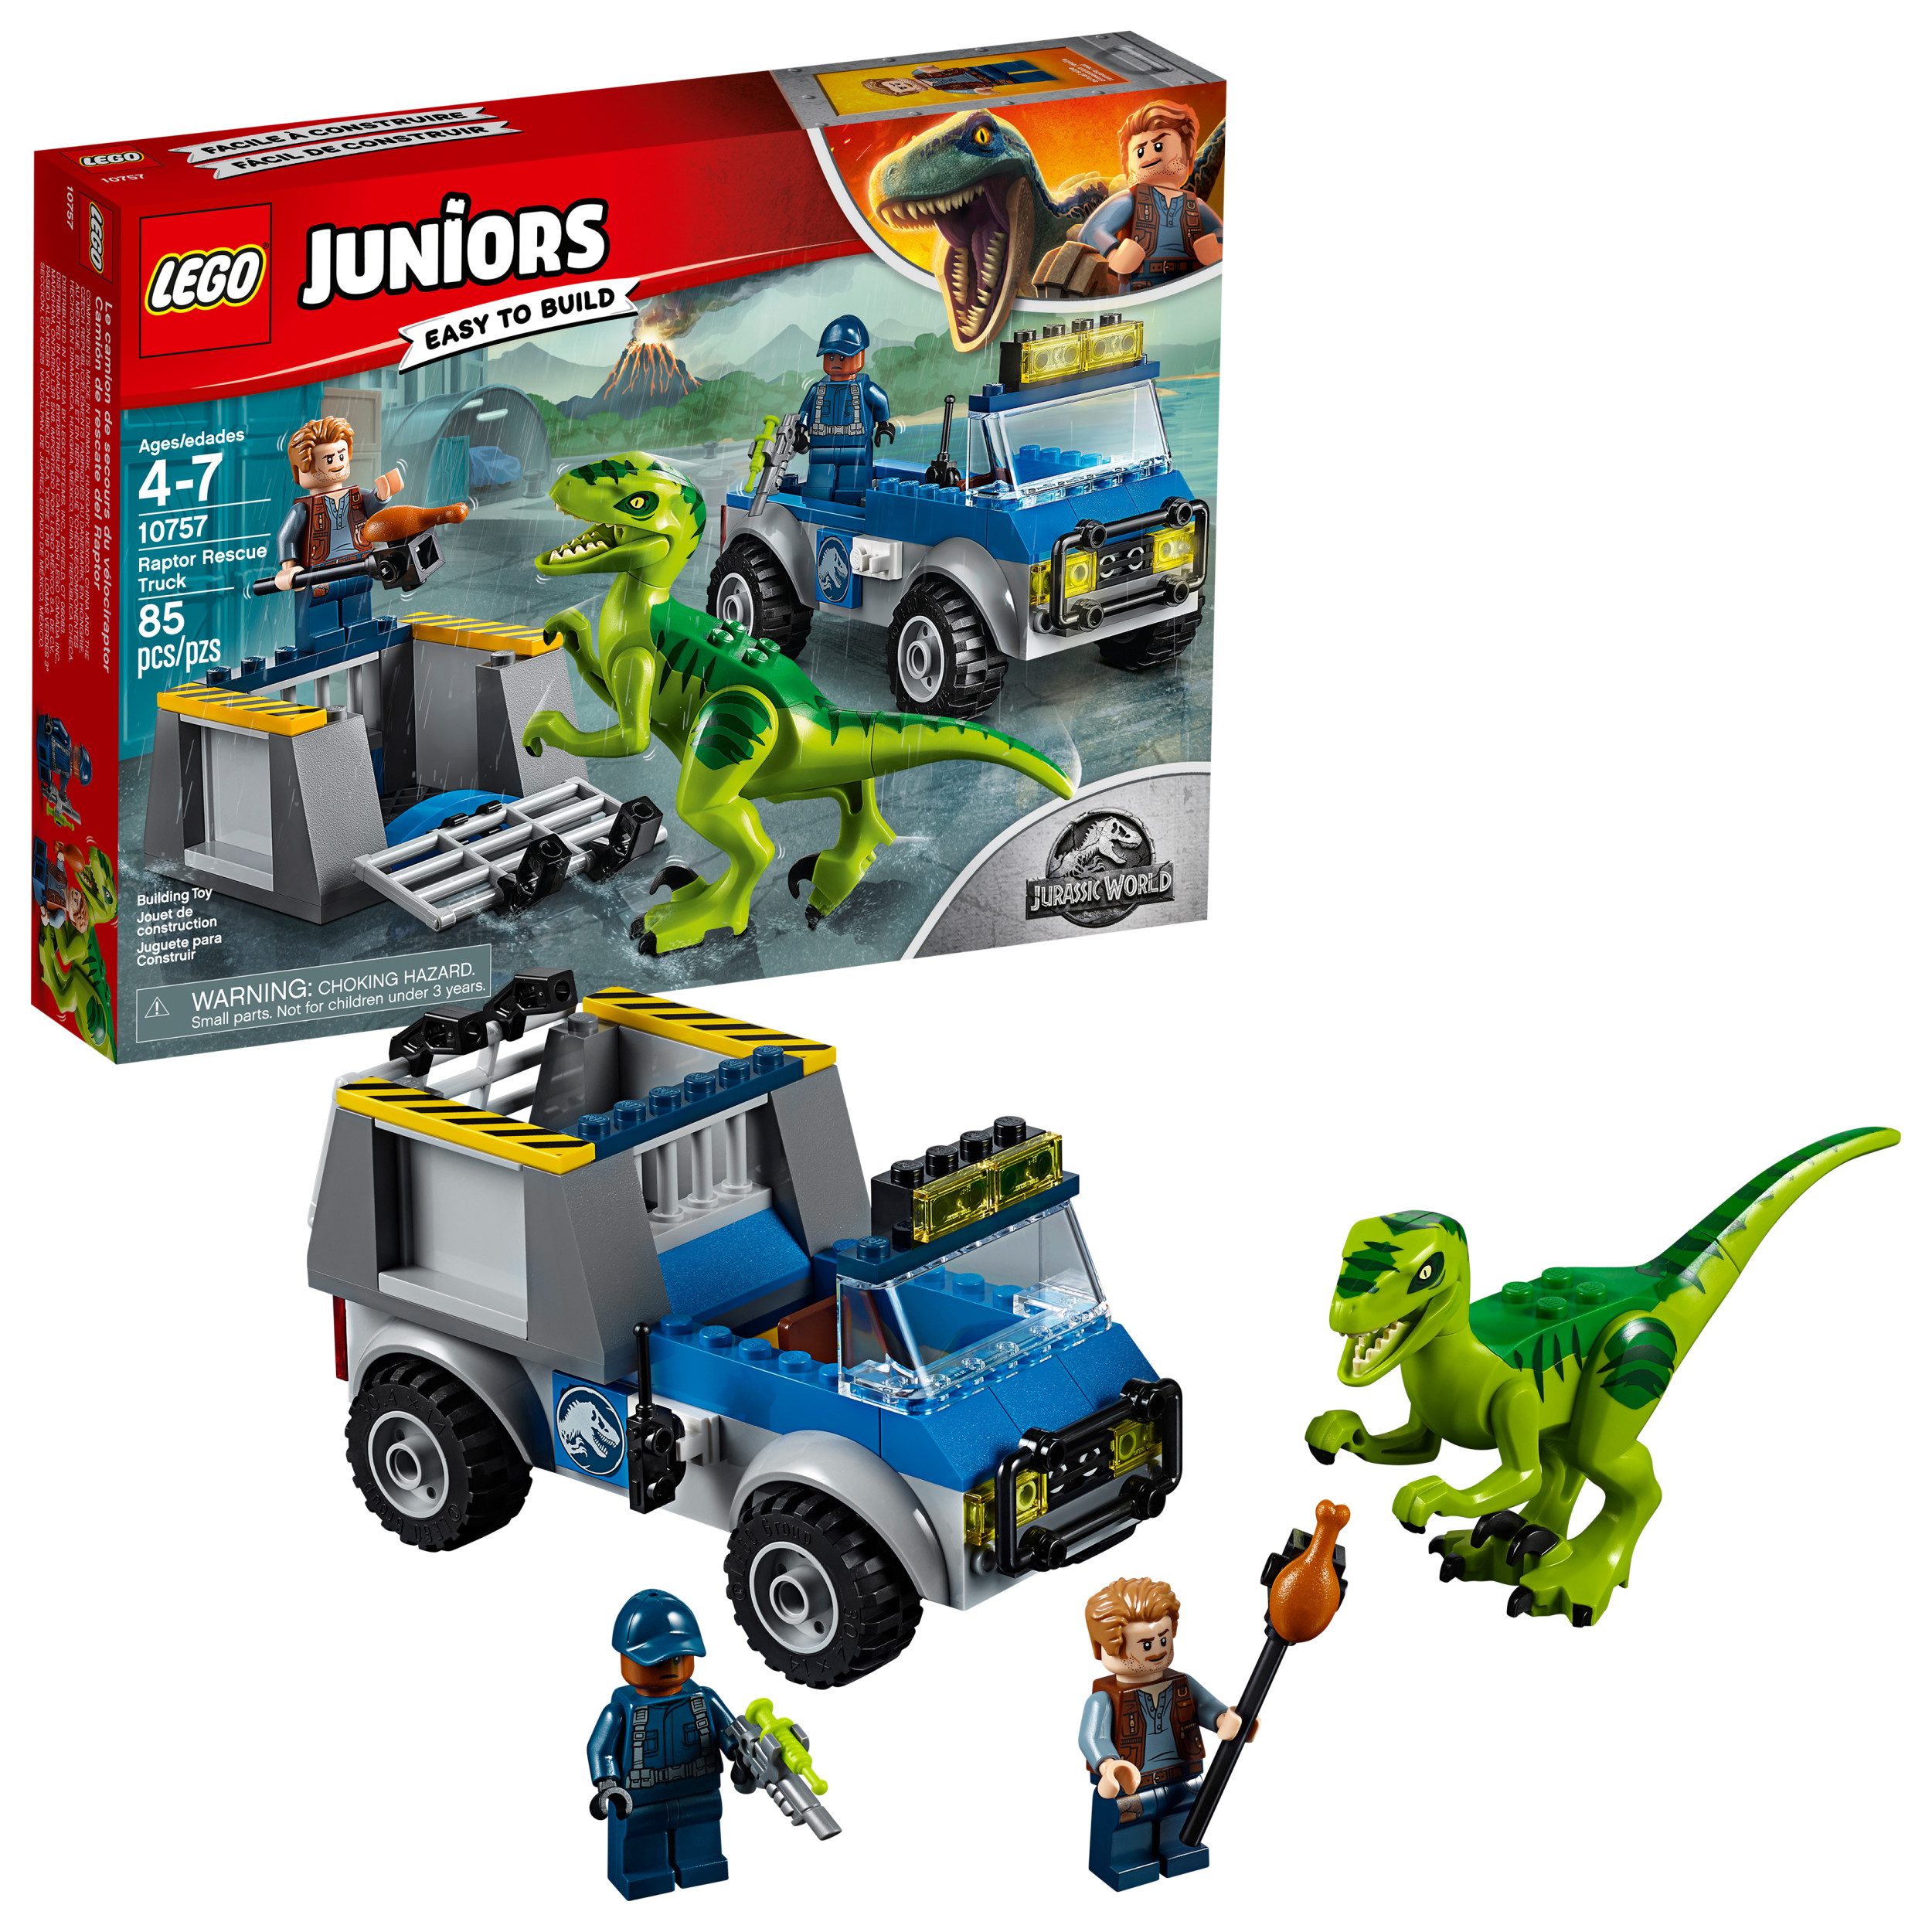 LEGO Juniors Jurassic World Raptor Rescue Truck 10757